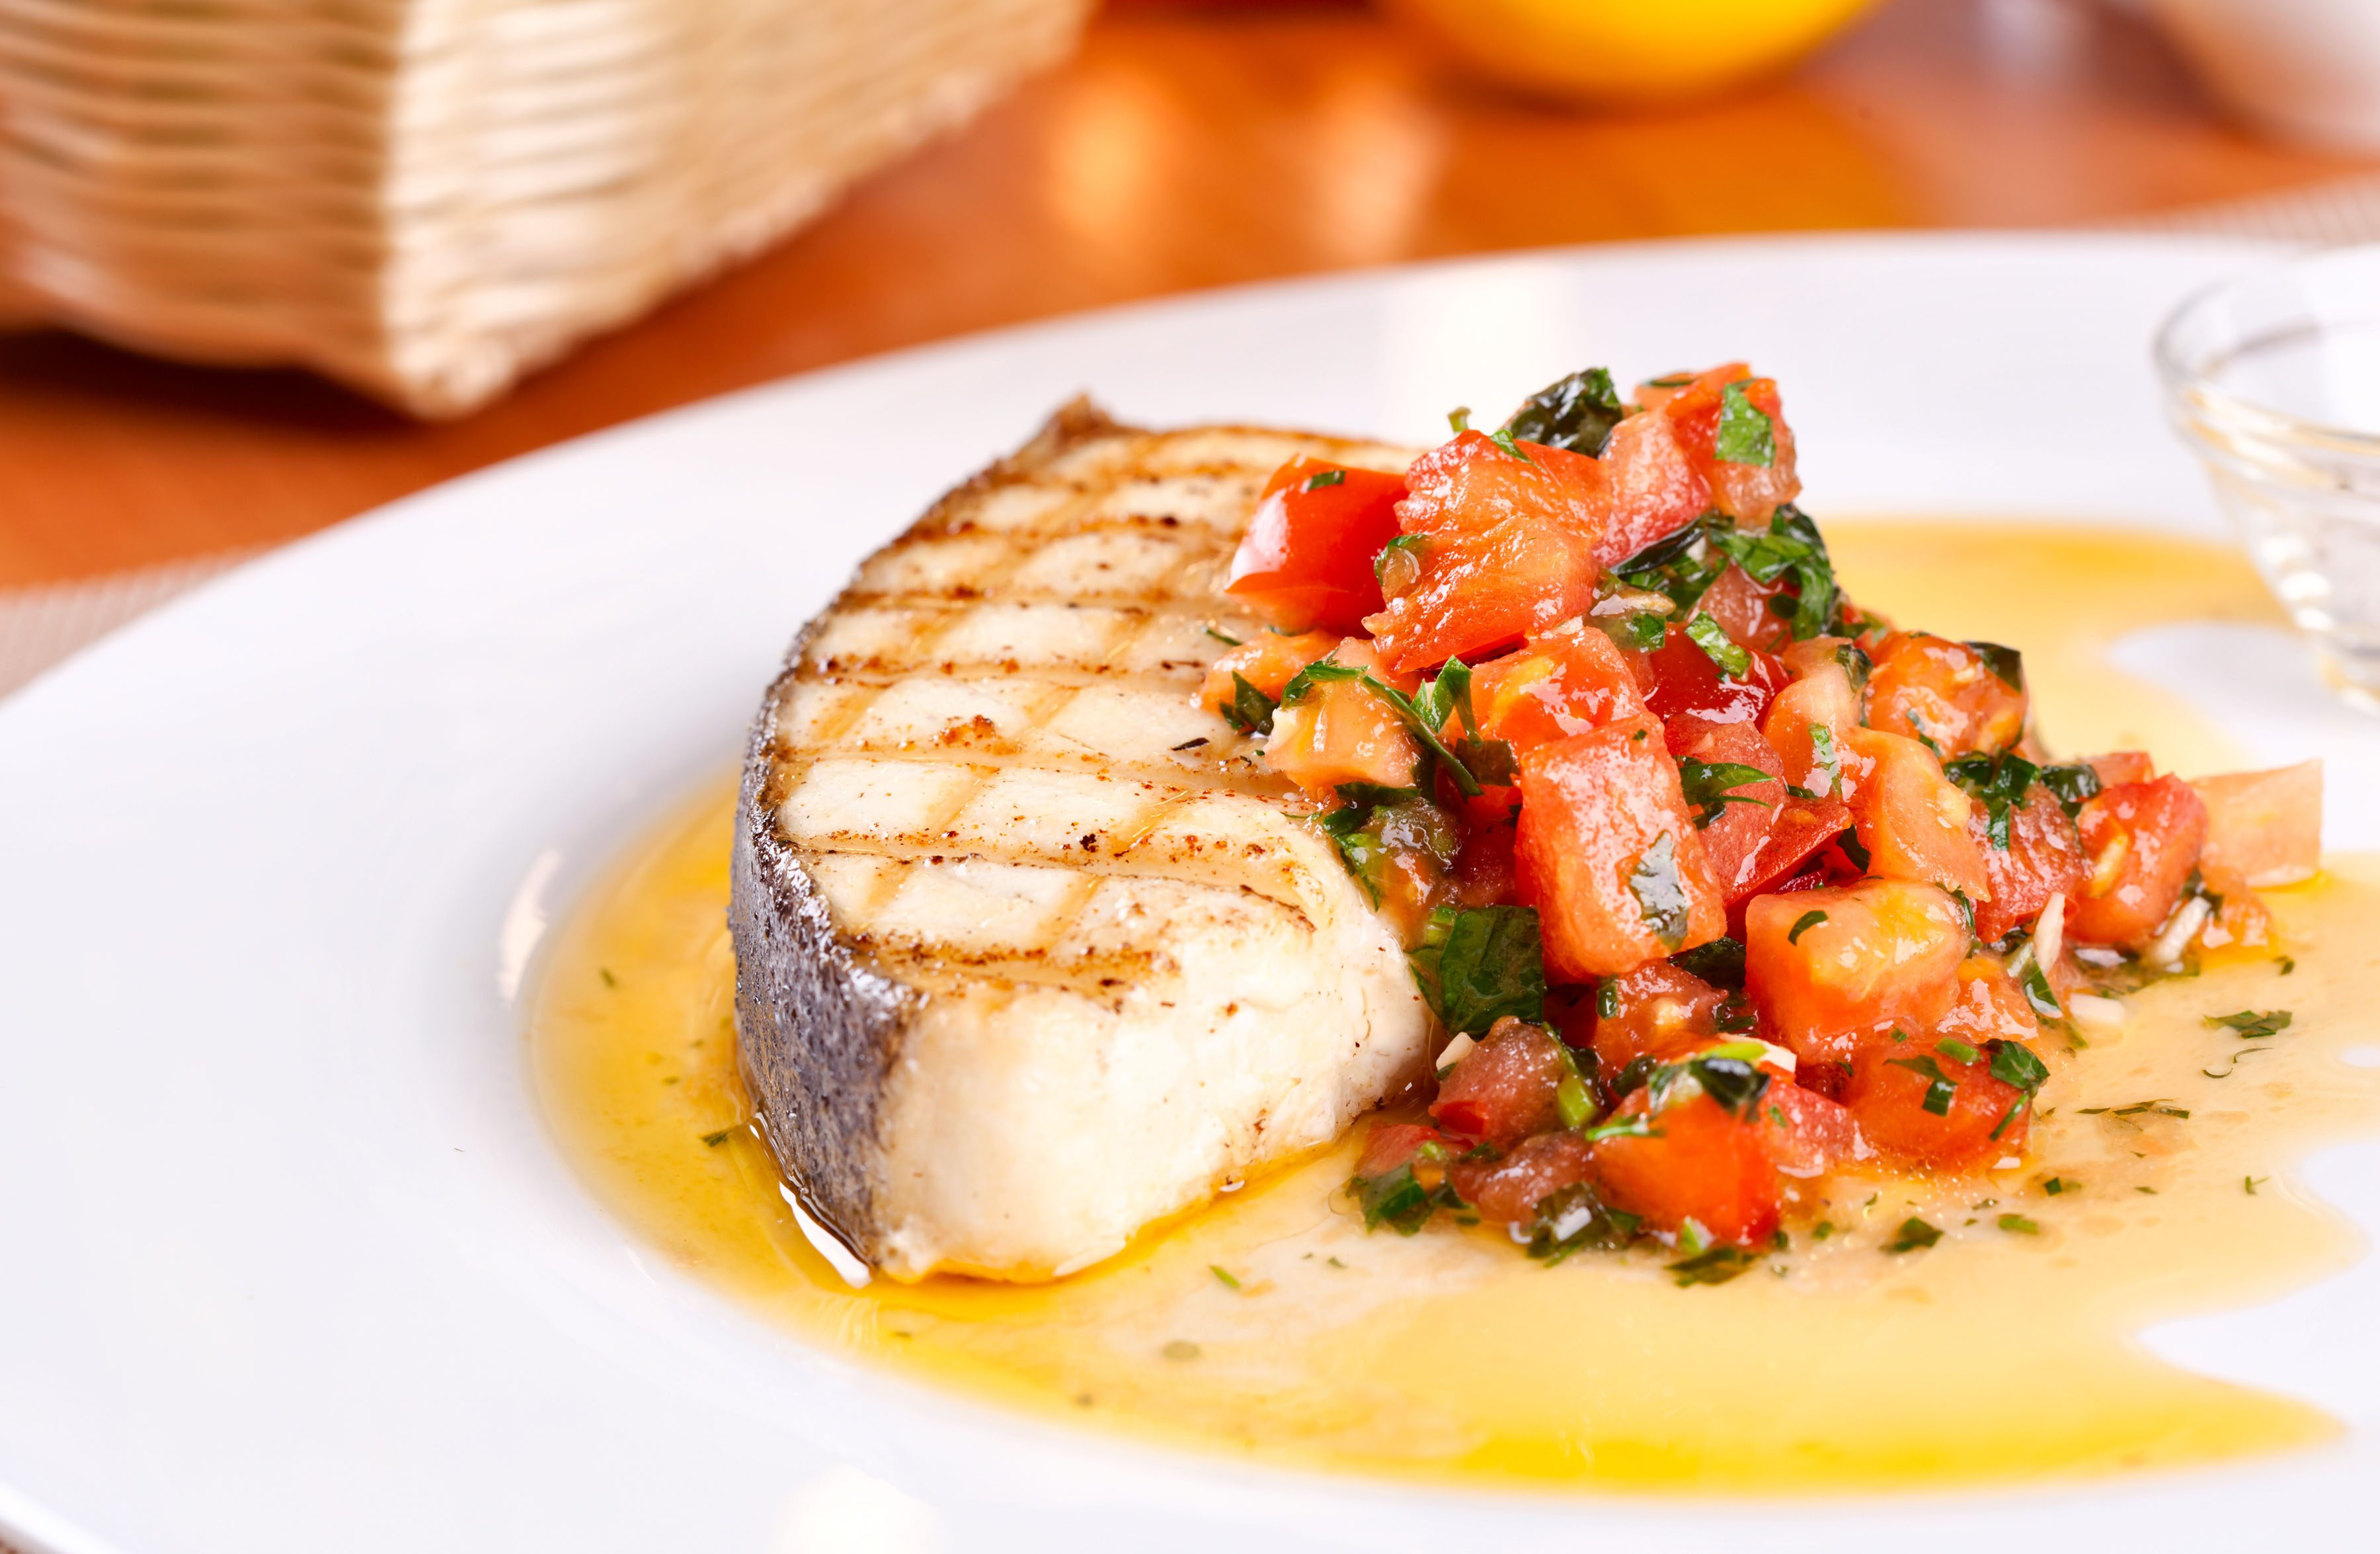 Grilled halibut steaks with tomato and red pepper salsa for Halibut fish recipes